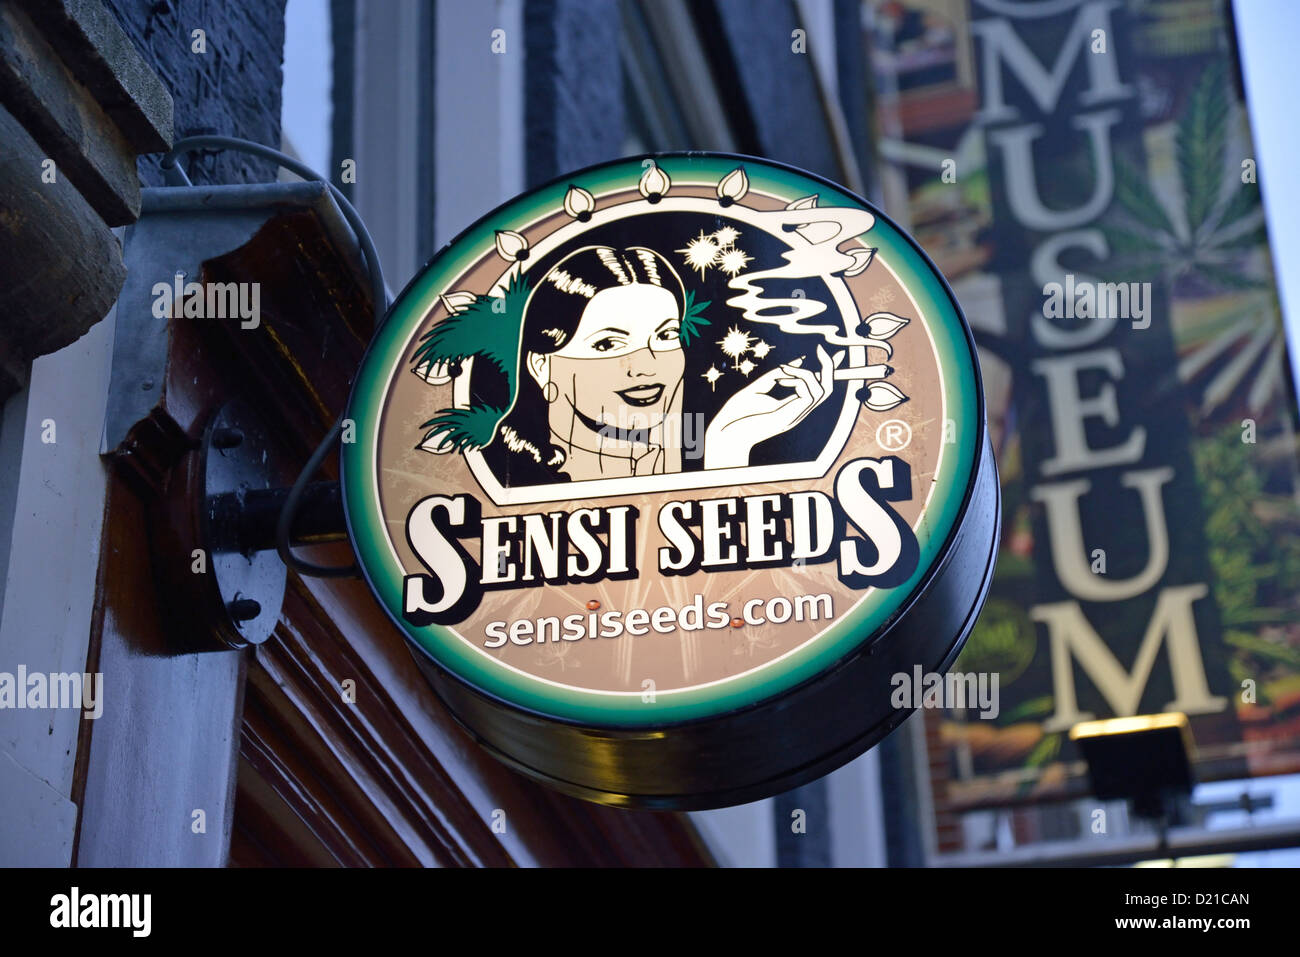 Sensiseeds' cannabis seed and cultivation shop sign in red